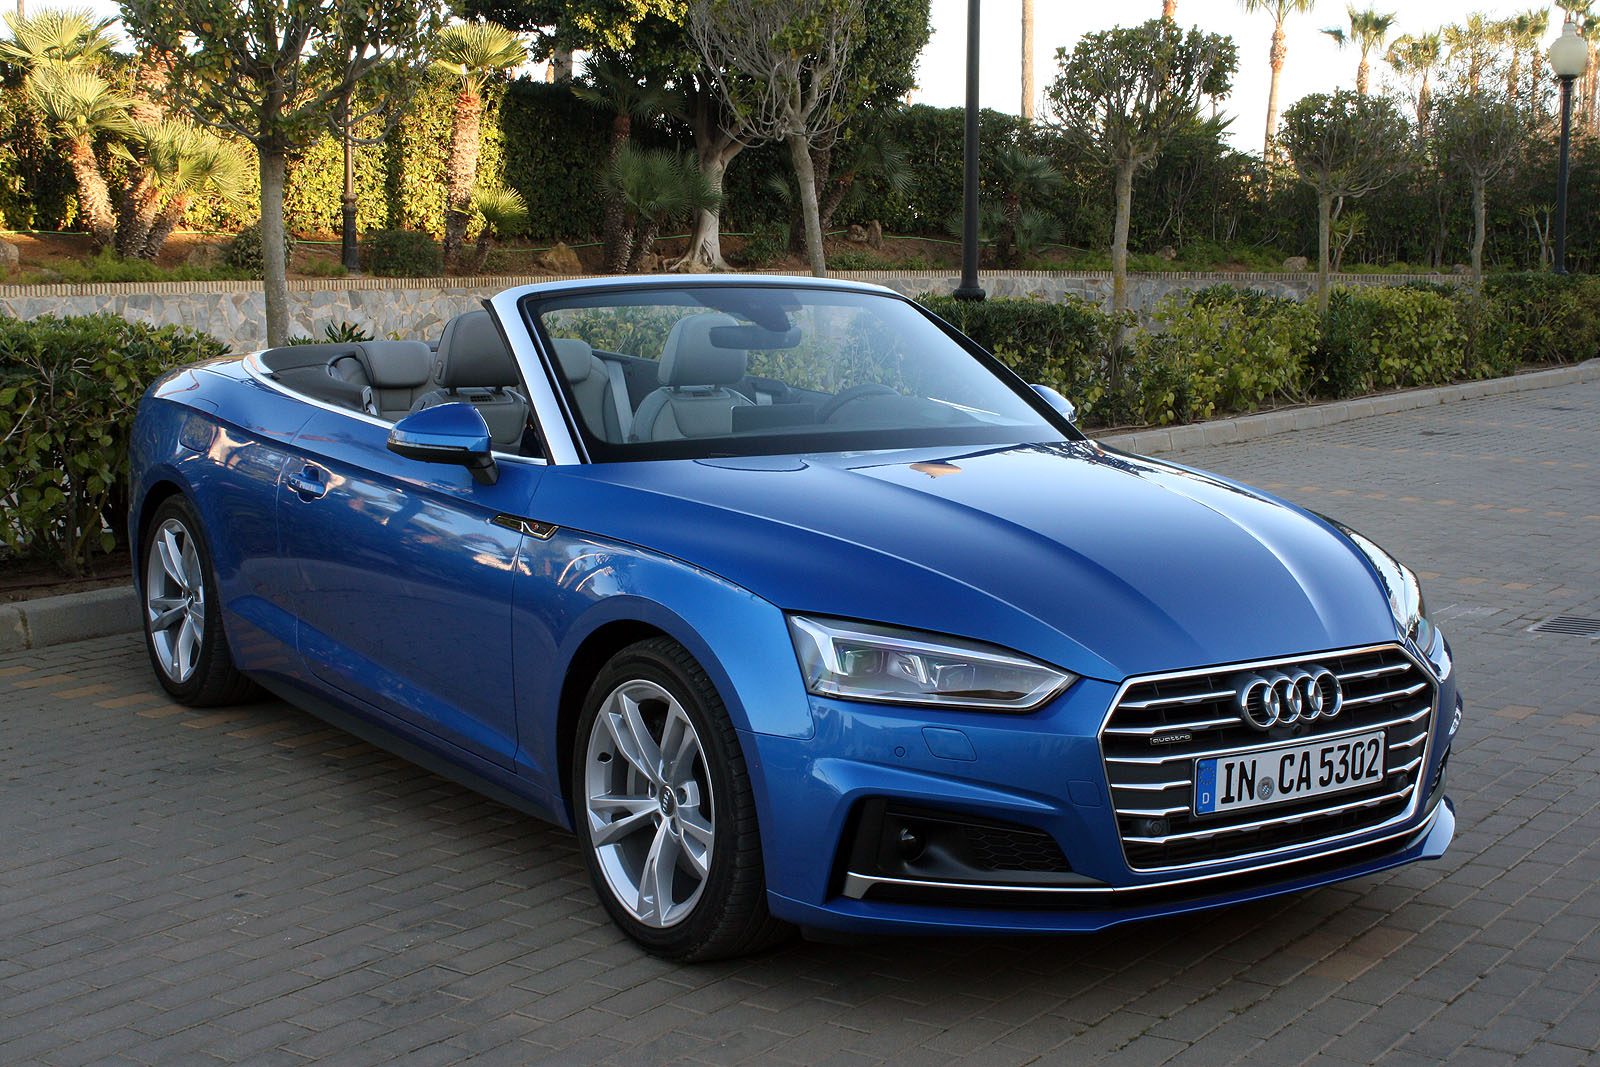 2018 Audi S5 Cabriolet And A5 66